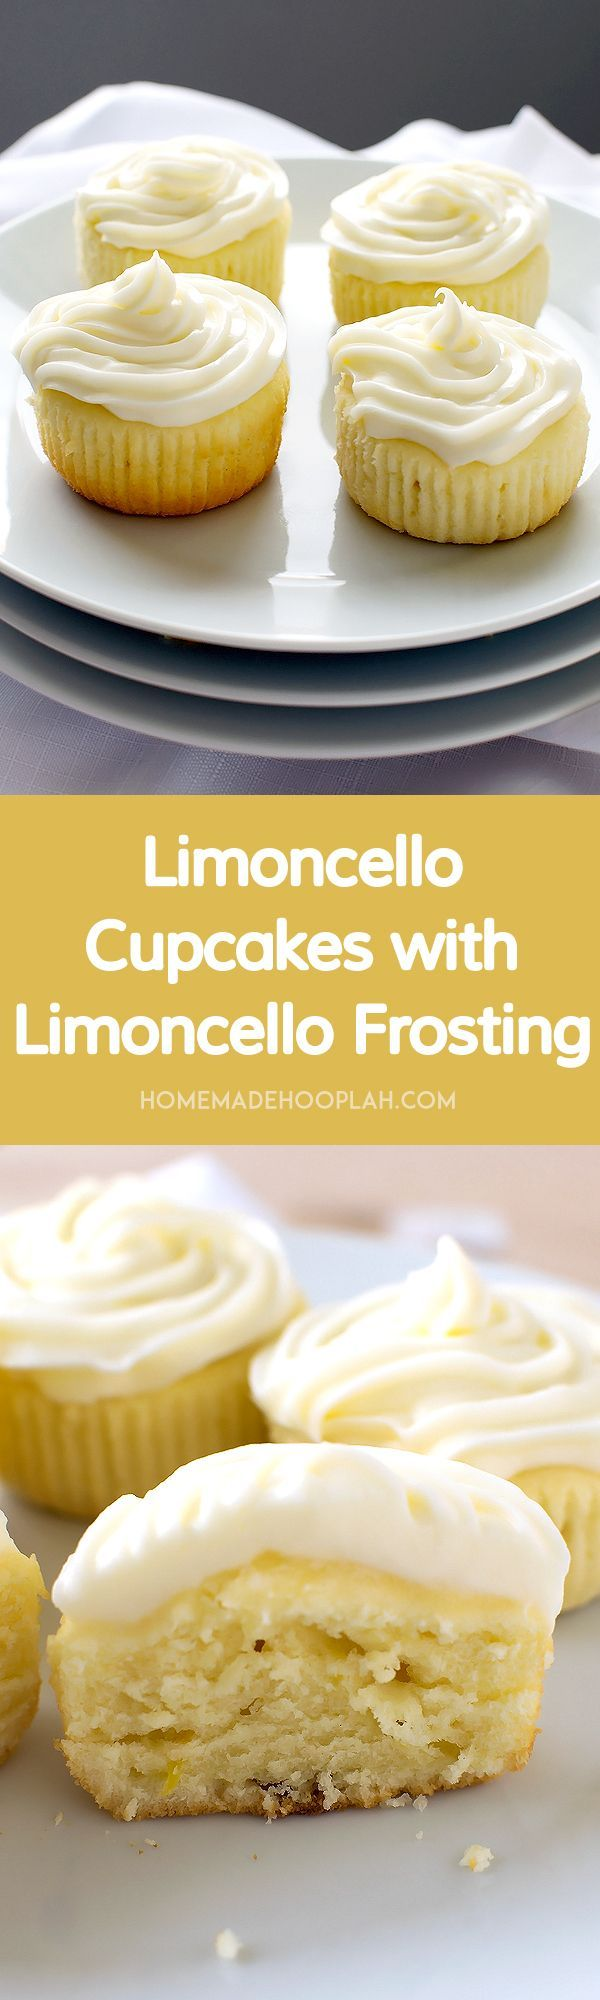 Limoncello Cupcakes with Limoncello Frosting! Cake-like Limoncello cupcakes topped with cream cheese frosting infused with more Limoncello. | HomemadeHooplah.com